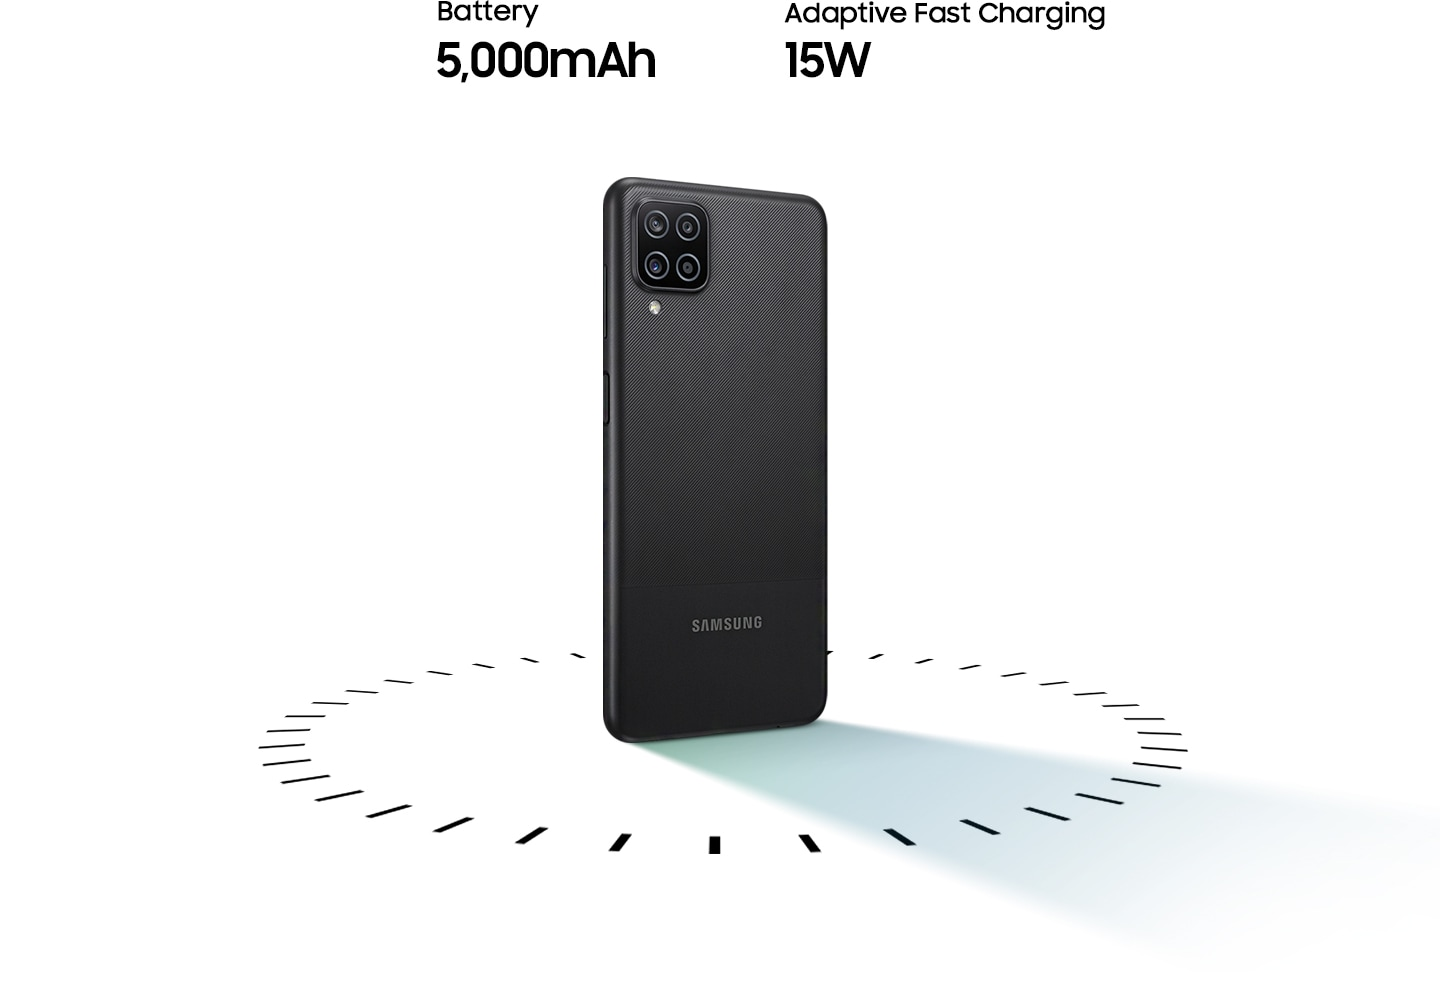 Galaxy A12 stands up, surrounded by circular dots, with the text of 5,000mAh Battery and 15W Adaptive Fast charging.